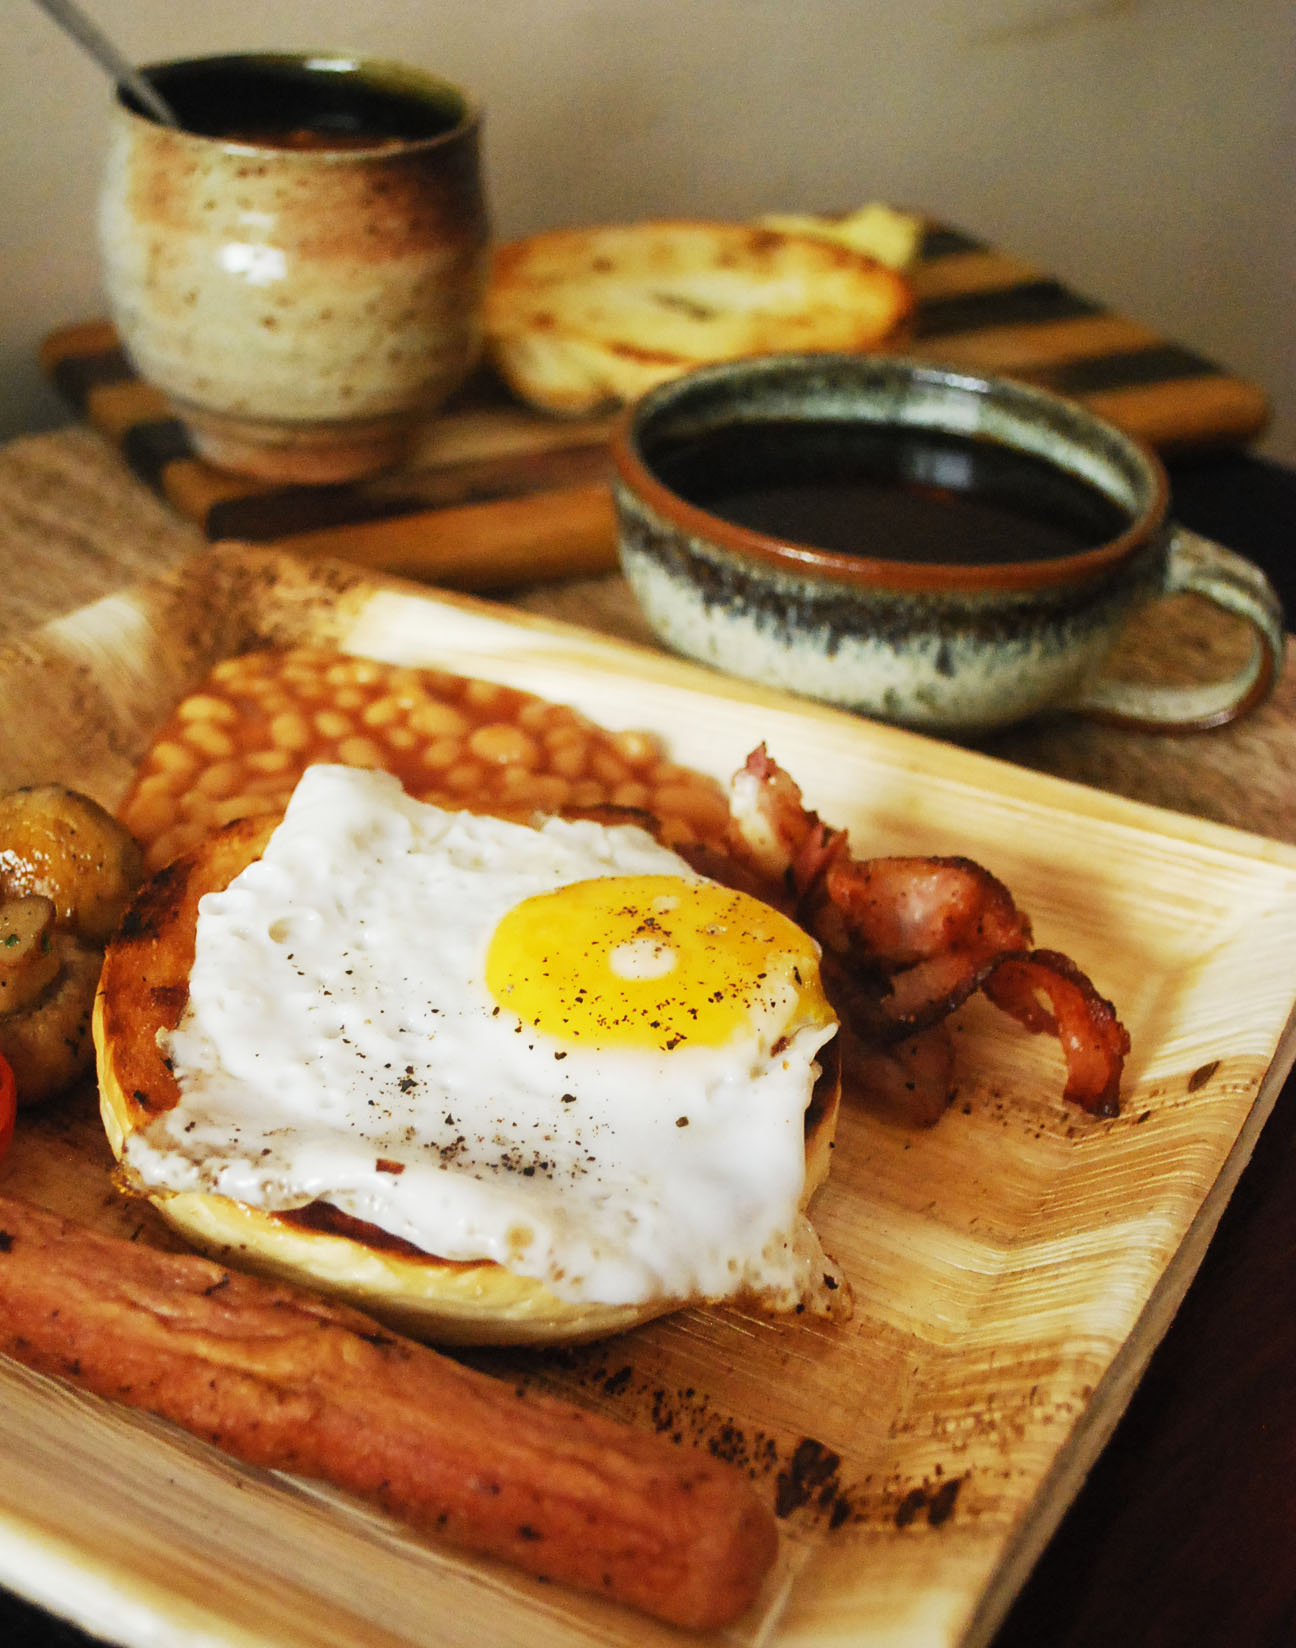 Starting the day with a perfect English breakfast